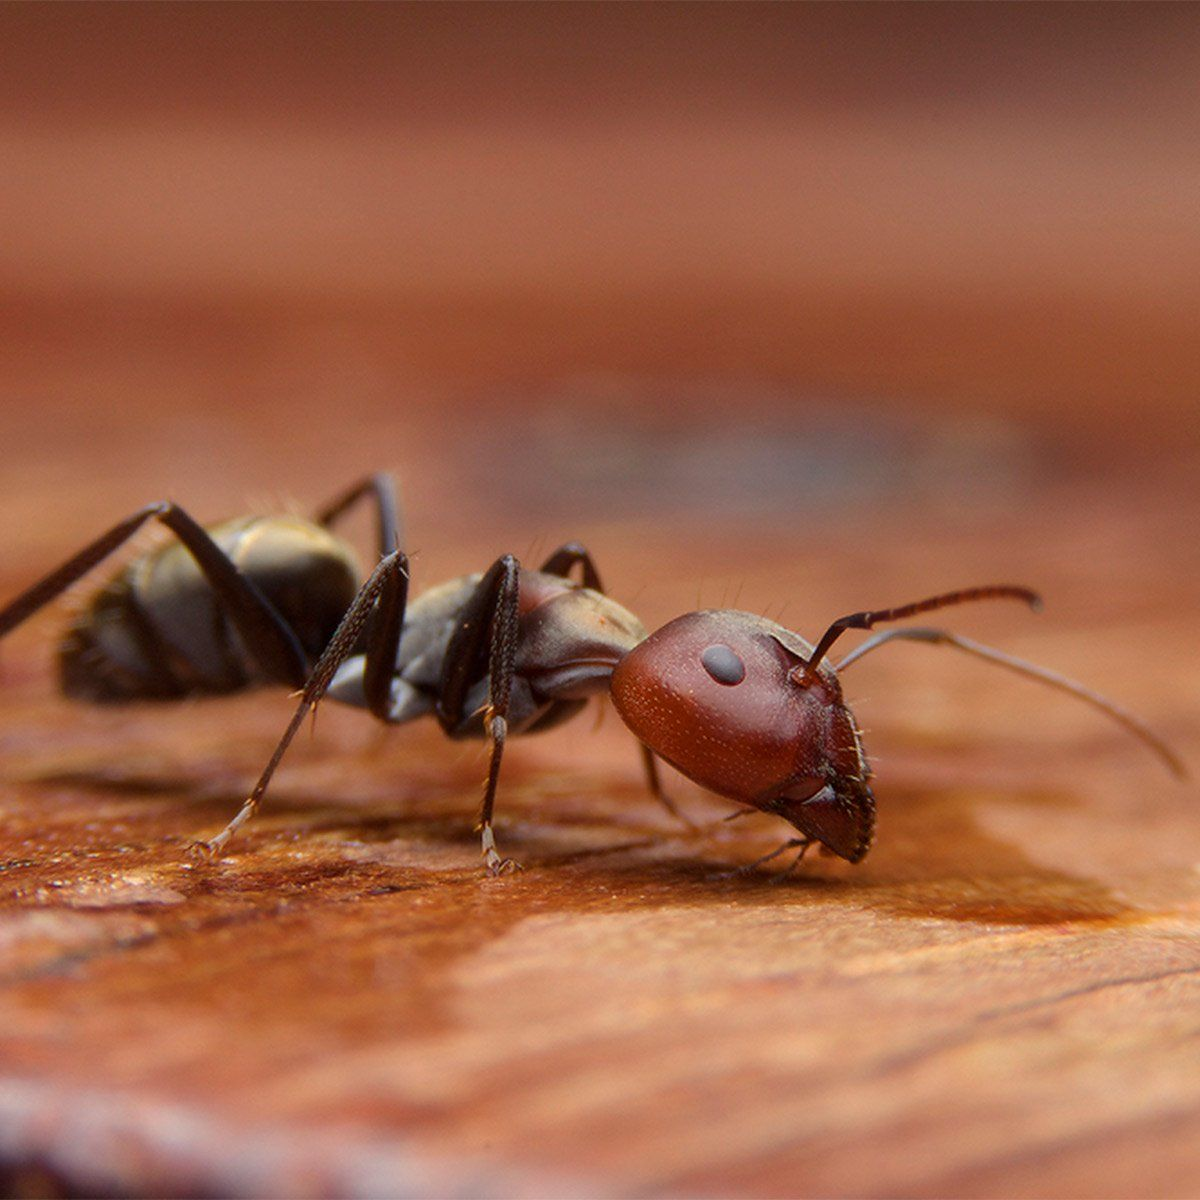 The 16 Most Disgusting House Bugs and How To Get Rid of